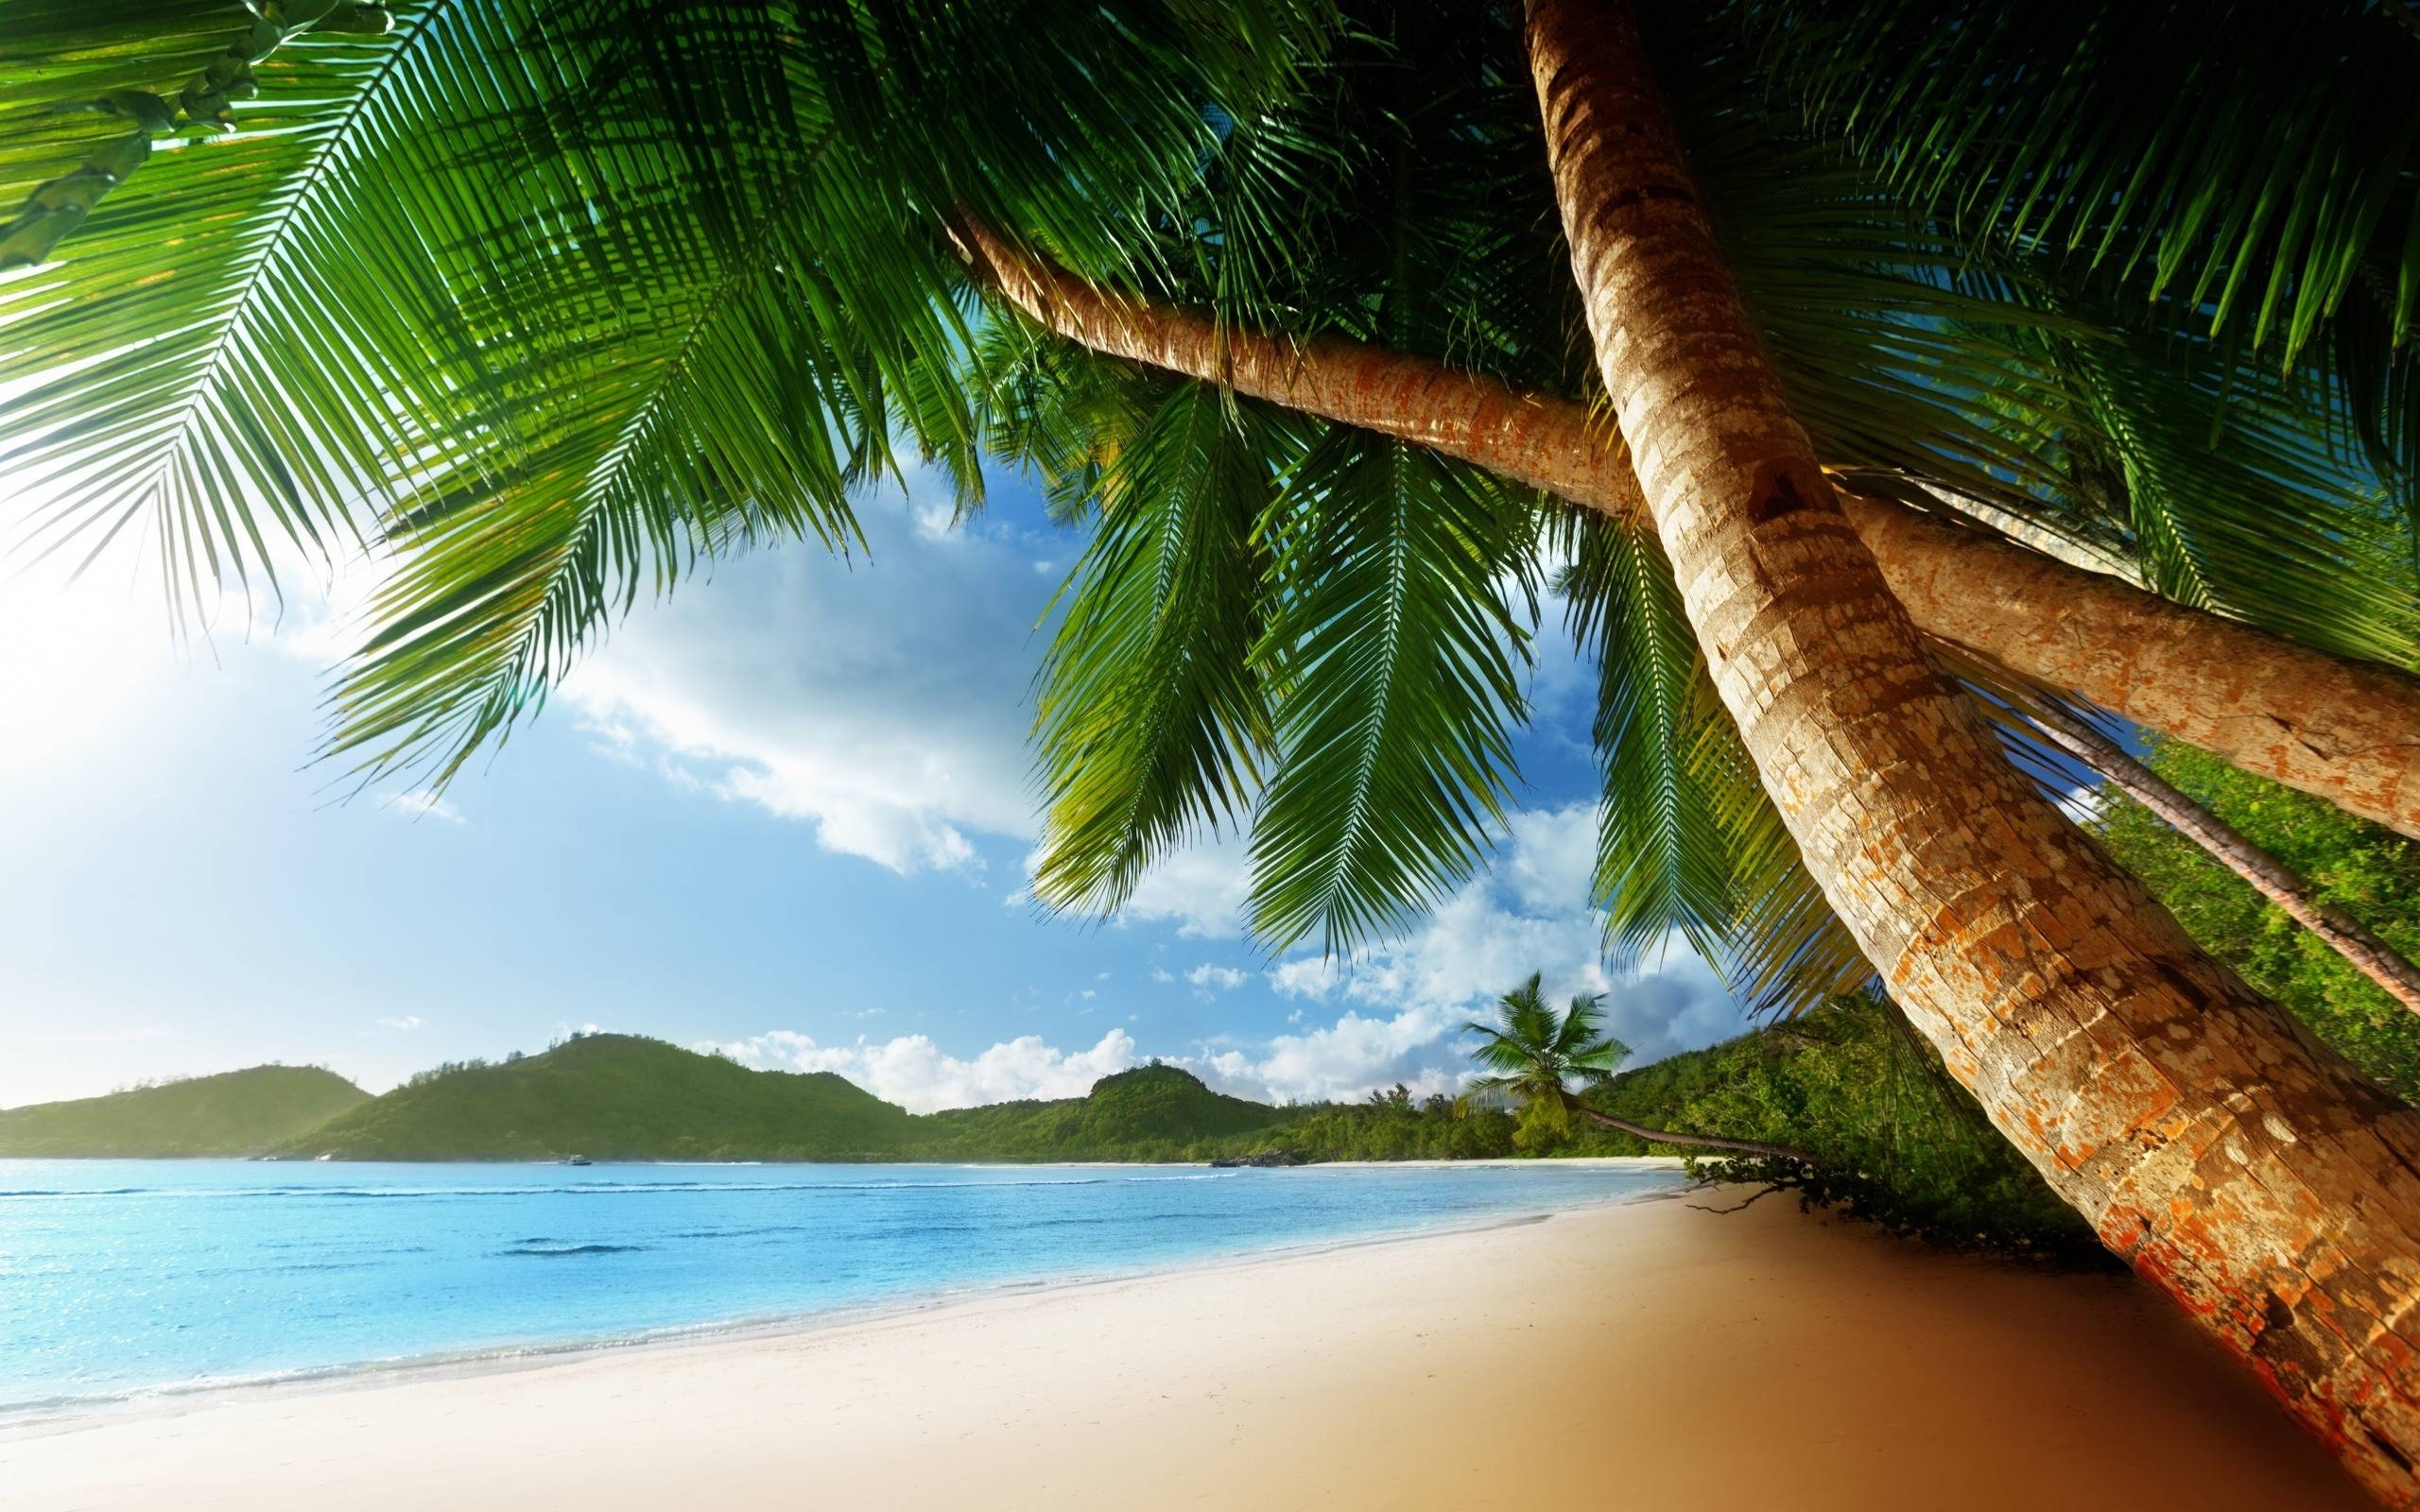 10 New Beach And Palm Trees Background FULL HD 1920×1080 For PC Background